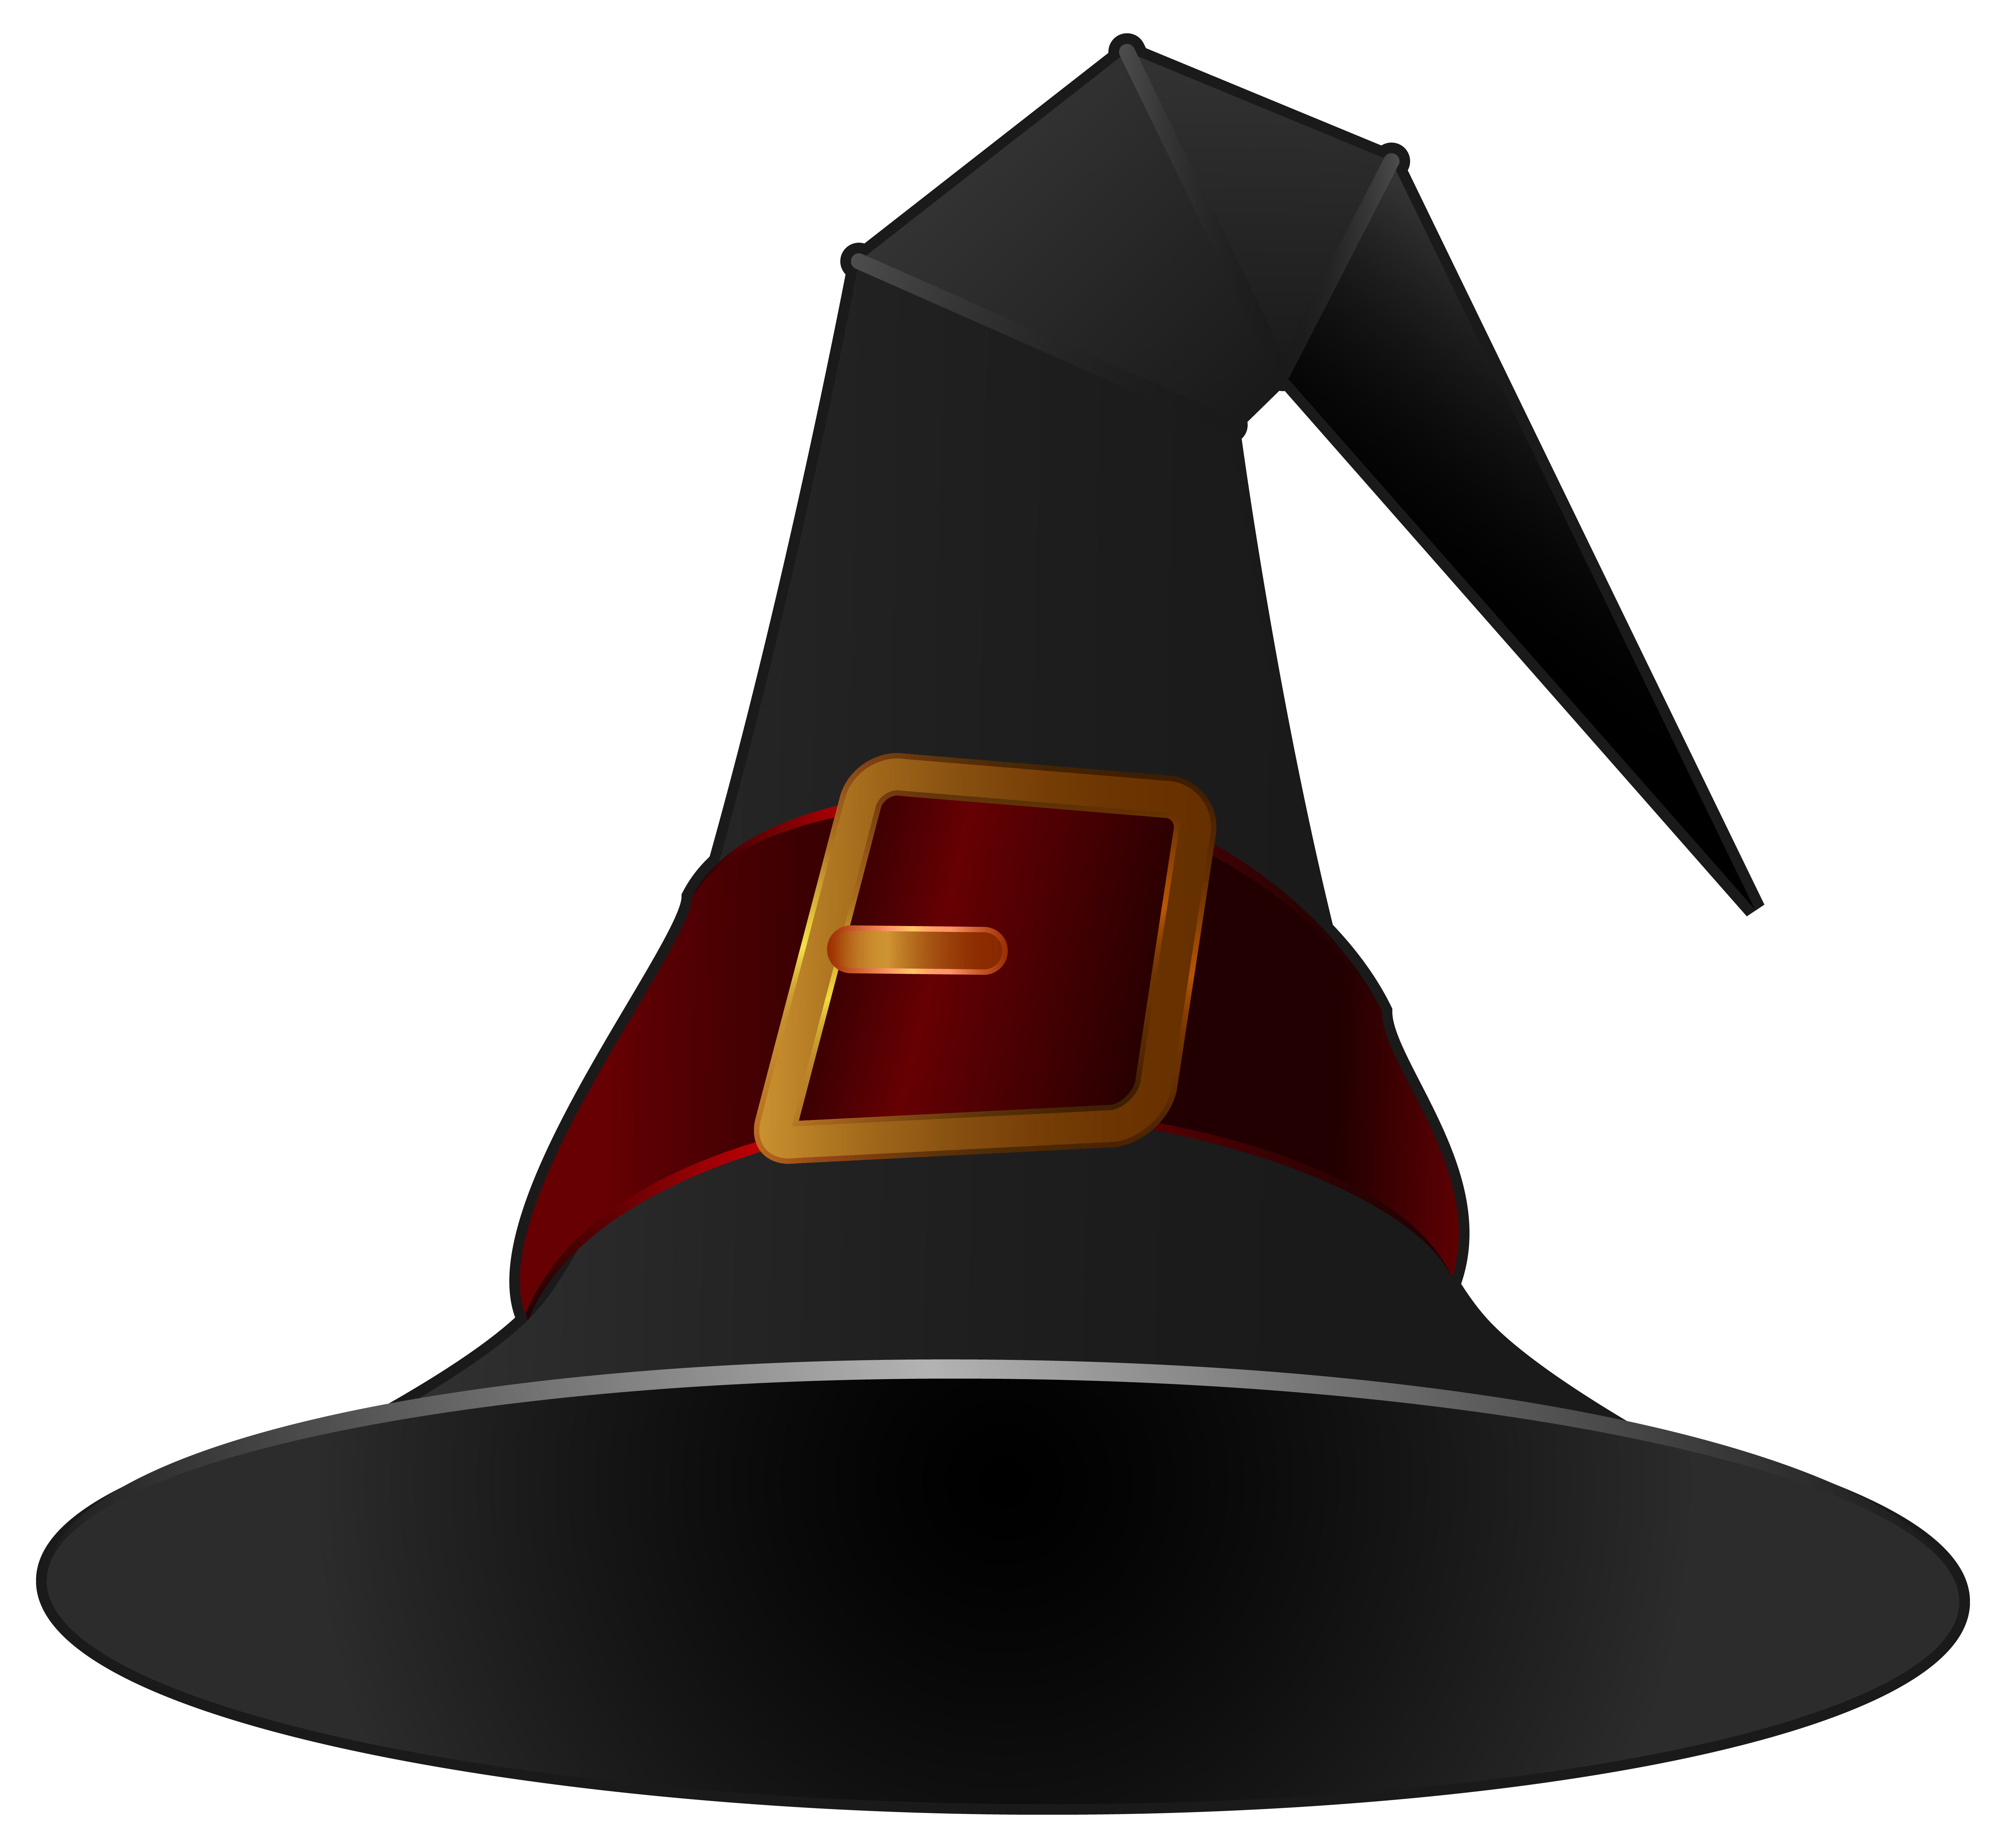 Black witch png image. Clipart halloween hat